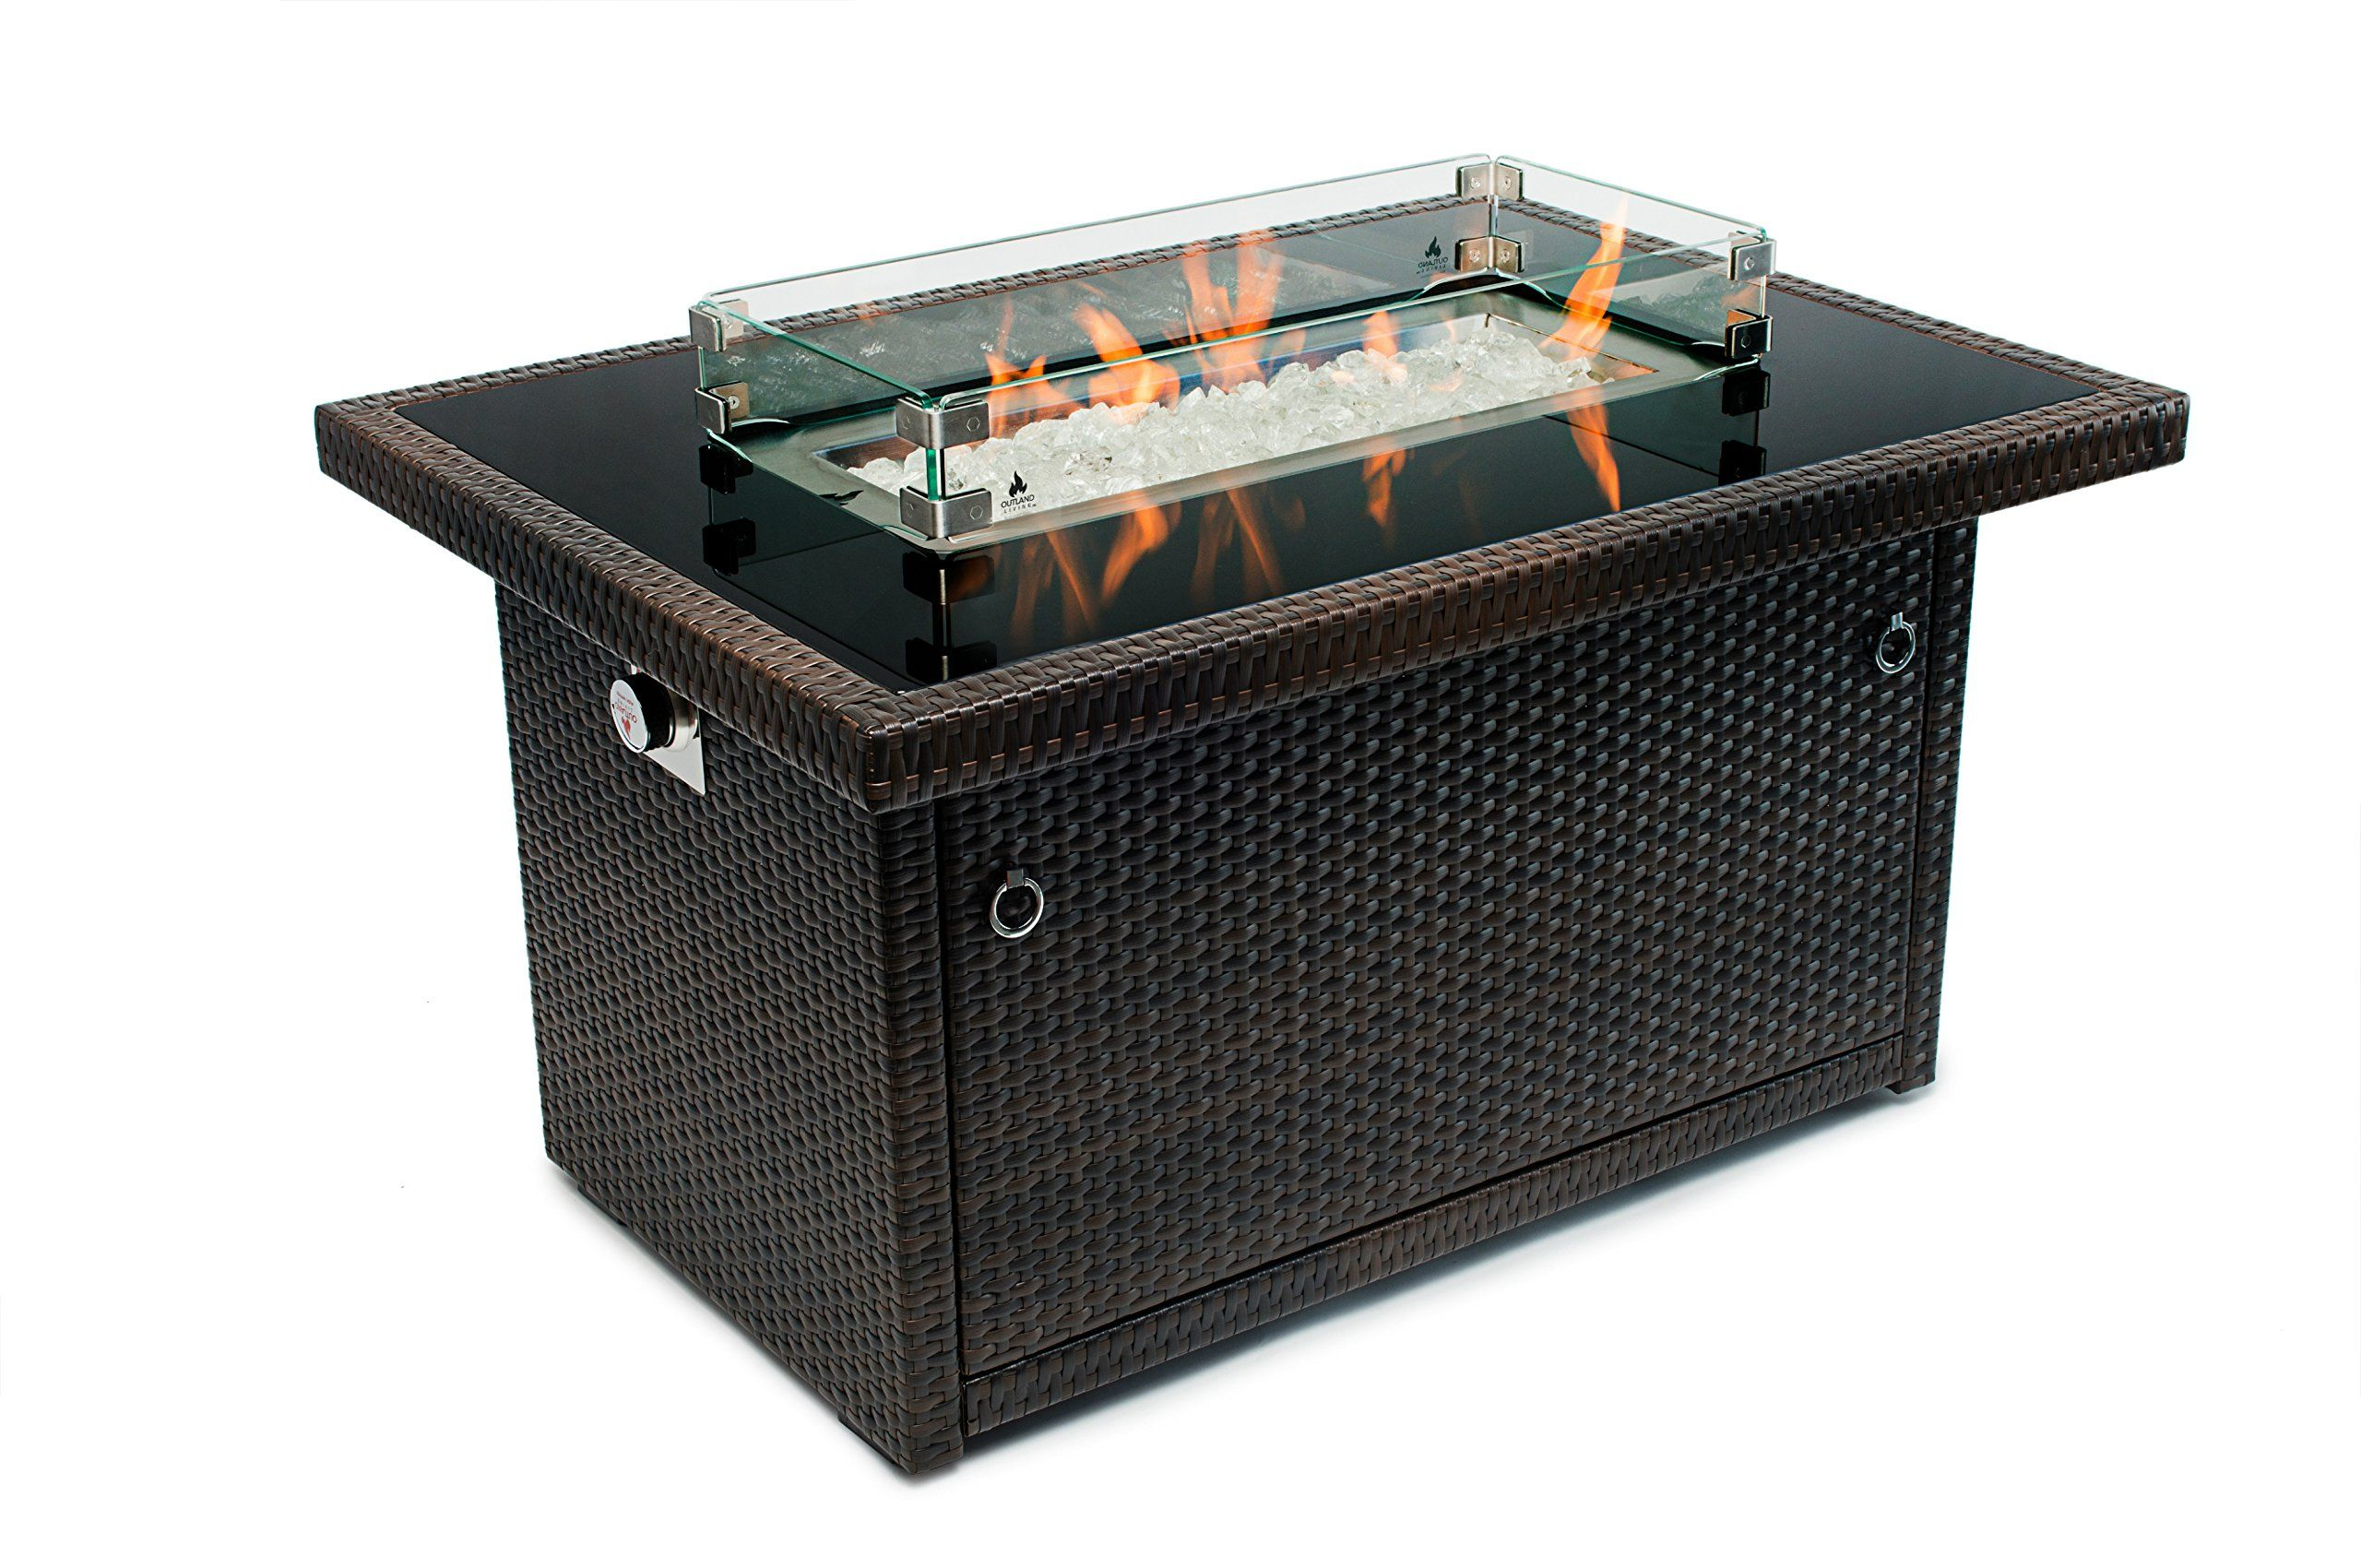 Outland Fire Table 3 Piece Rectangle Accessory Set Of Tempered Glass Lid Insert Tempered Glass Wind Guard Fenc Fire Table Fire Pit Table Propane Fire Pit Table